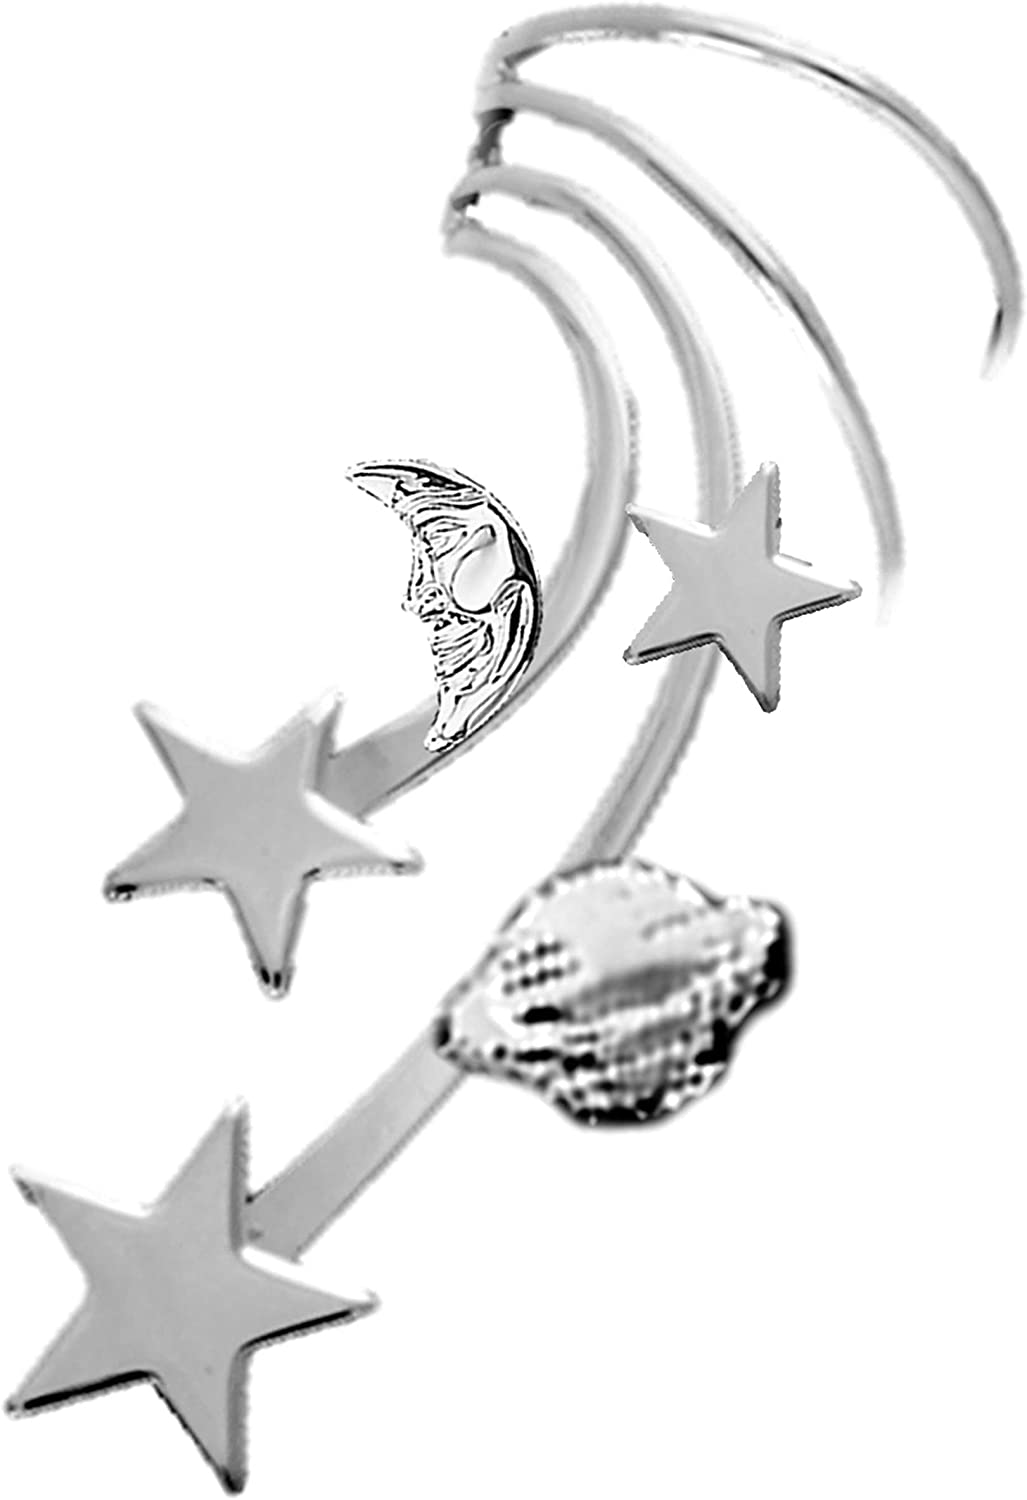 Ear Milwaukee Mall Charms Galaxy Long Wave Cuff Left Non Pierced Wr Earring Max 64% OFF